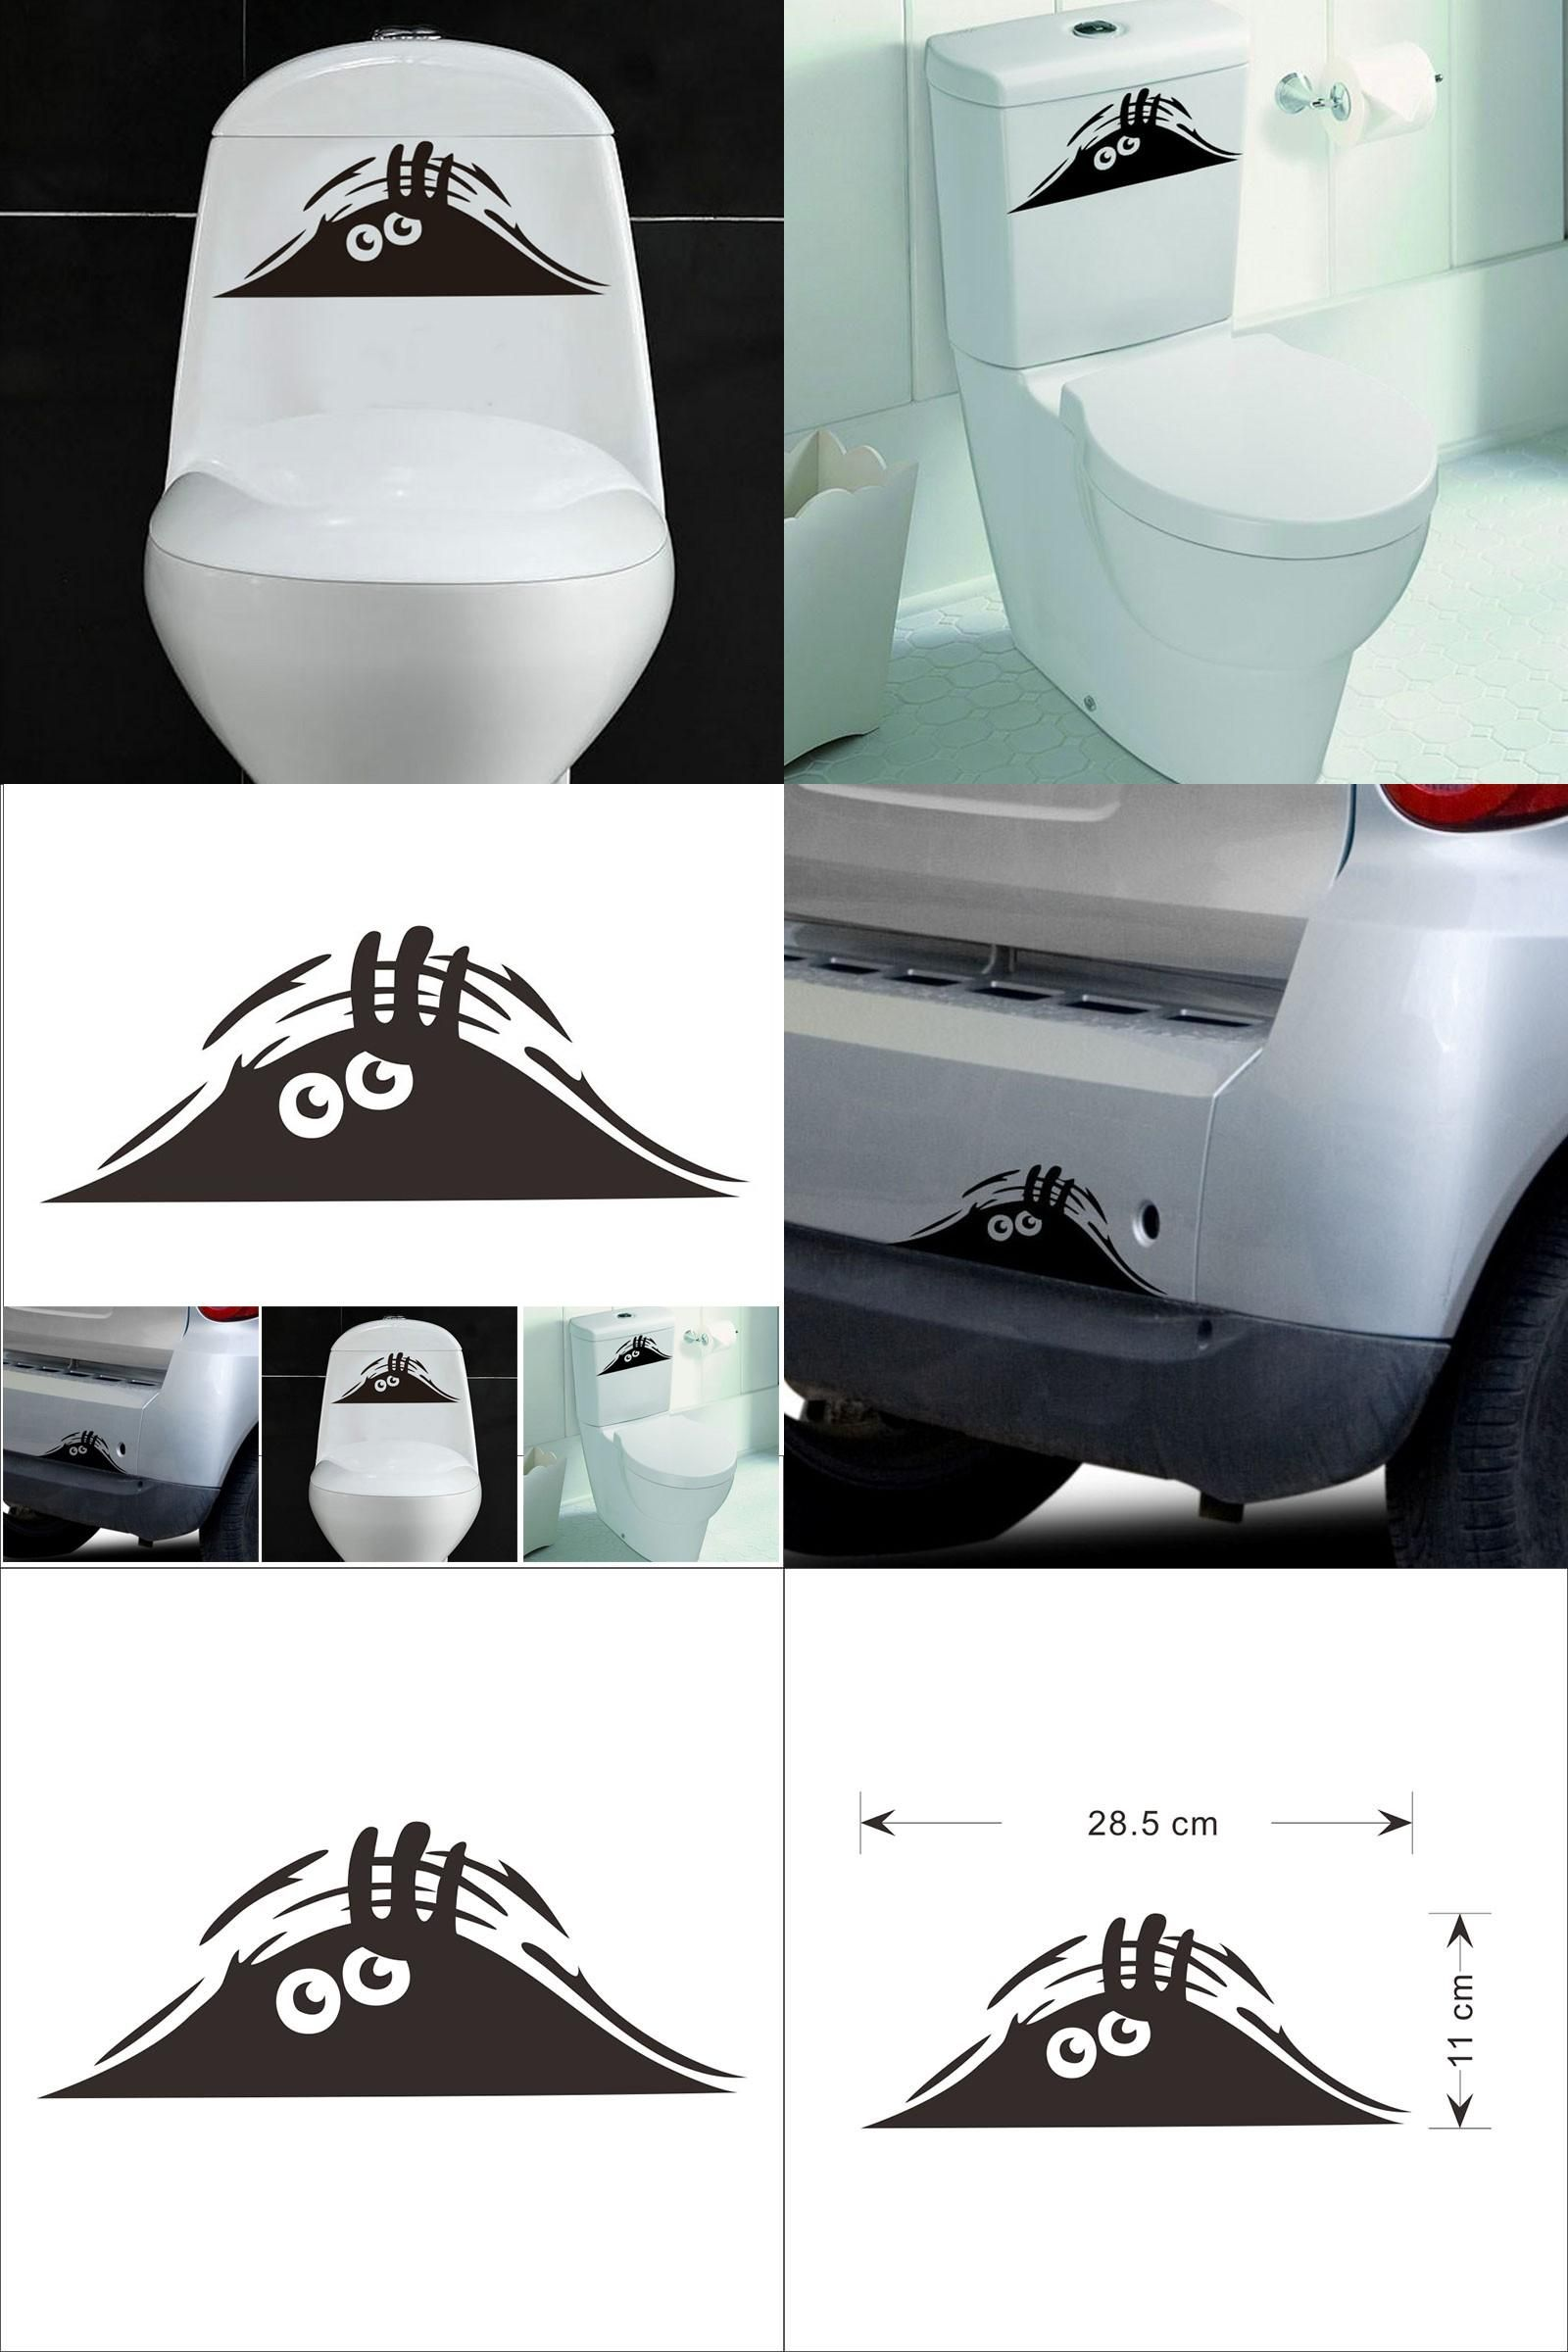 Visit To Buy Pvc 3d Cartoon Waterproof Car Wall Stickers Funny Toilet Stickers Wc For Living Room Bathroom Be Wall Decor Bedroom Waterproof Car Wall Stickers [ 2400 x 1600 Pixel ]